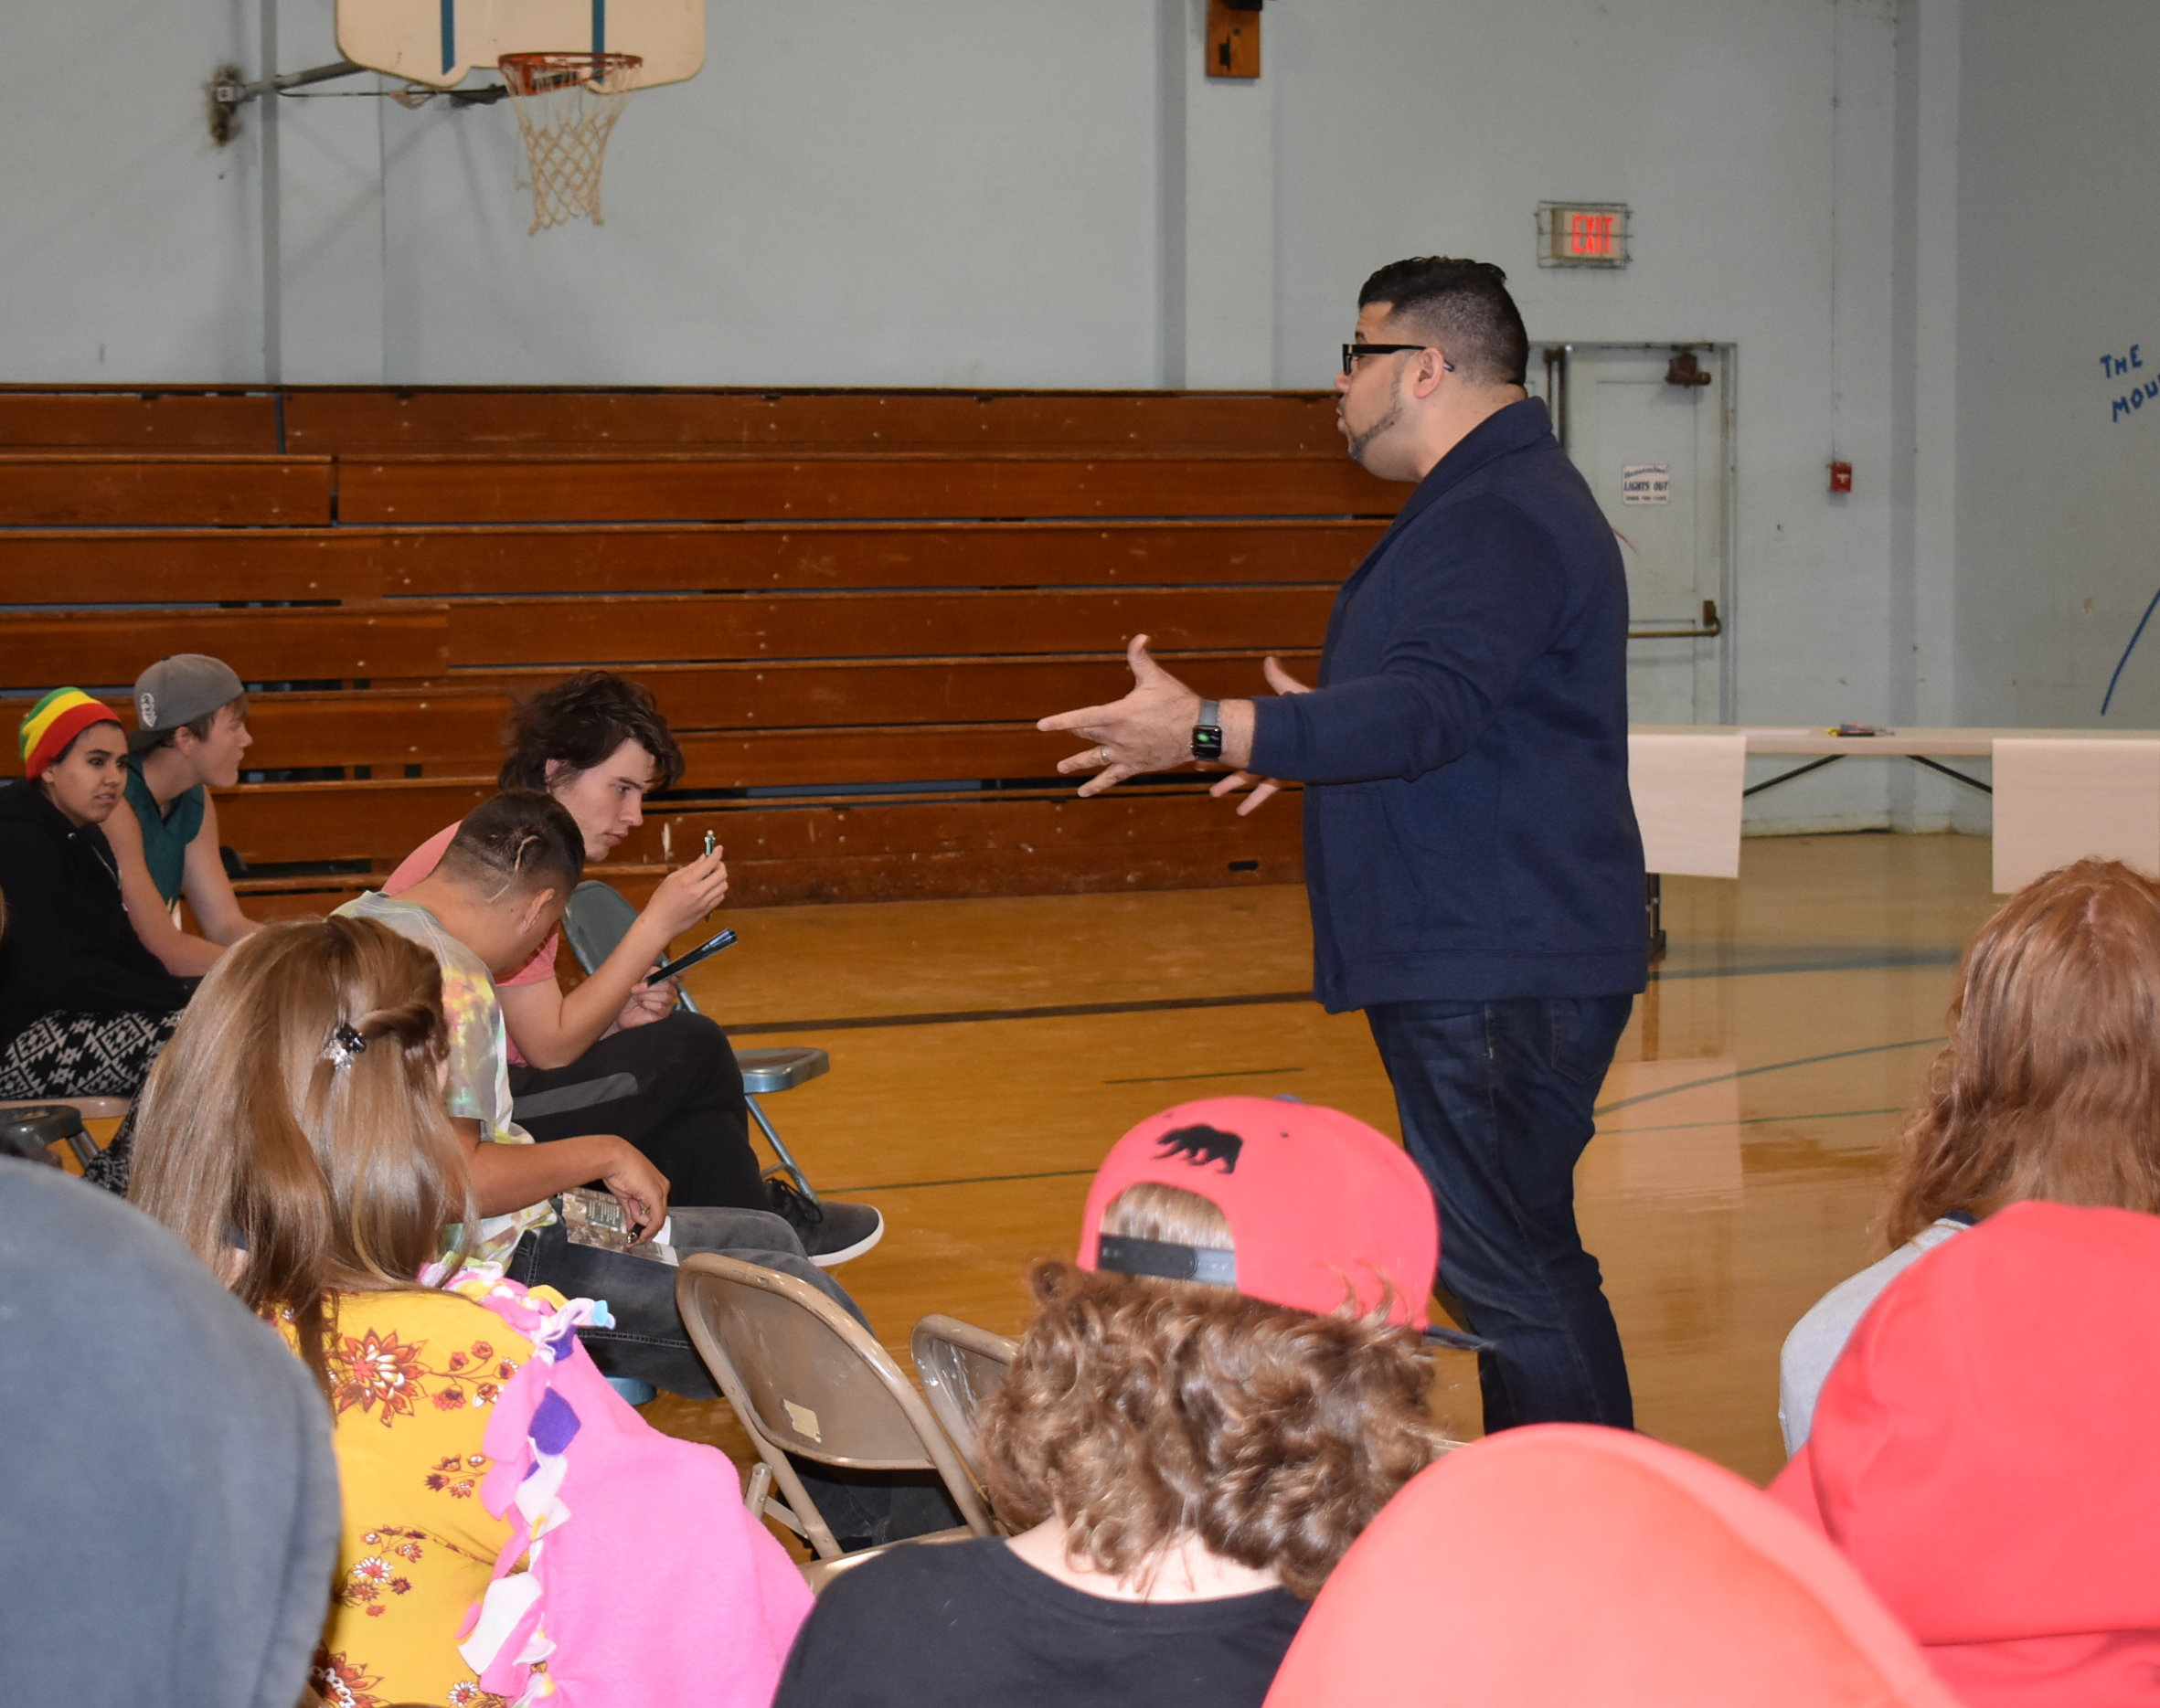 A GearUP presenter speaks to a small crowd of high school students